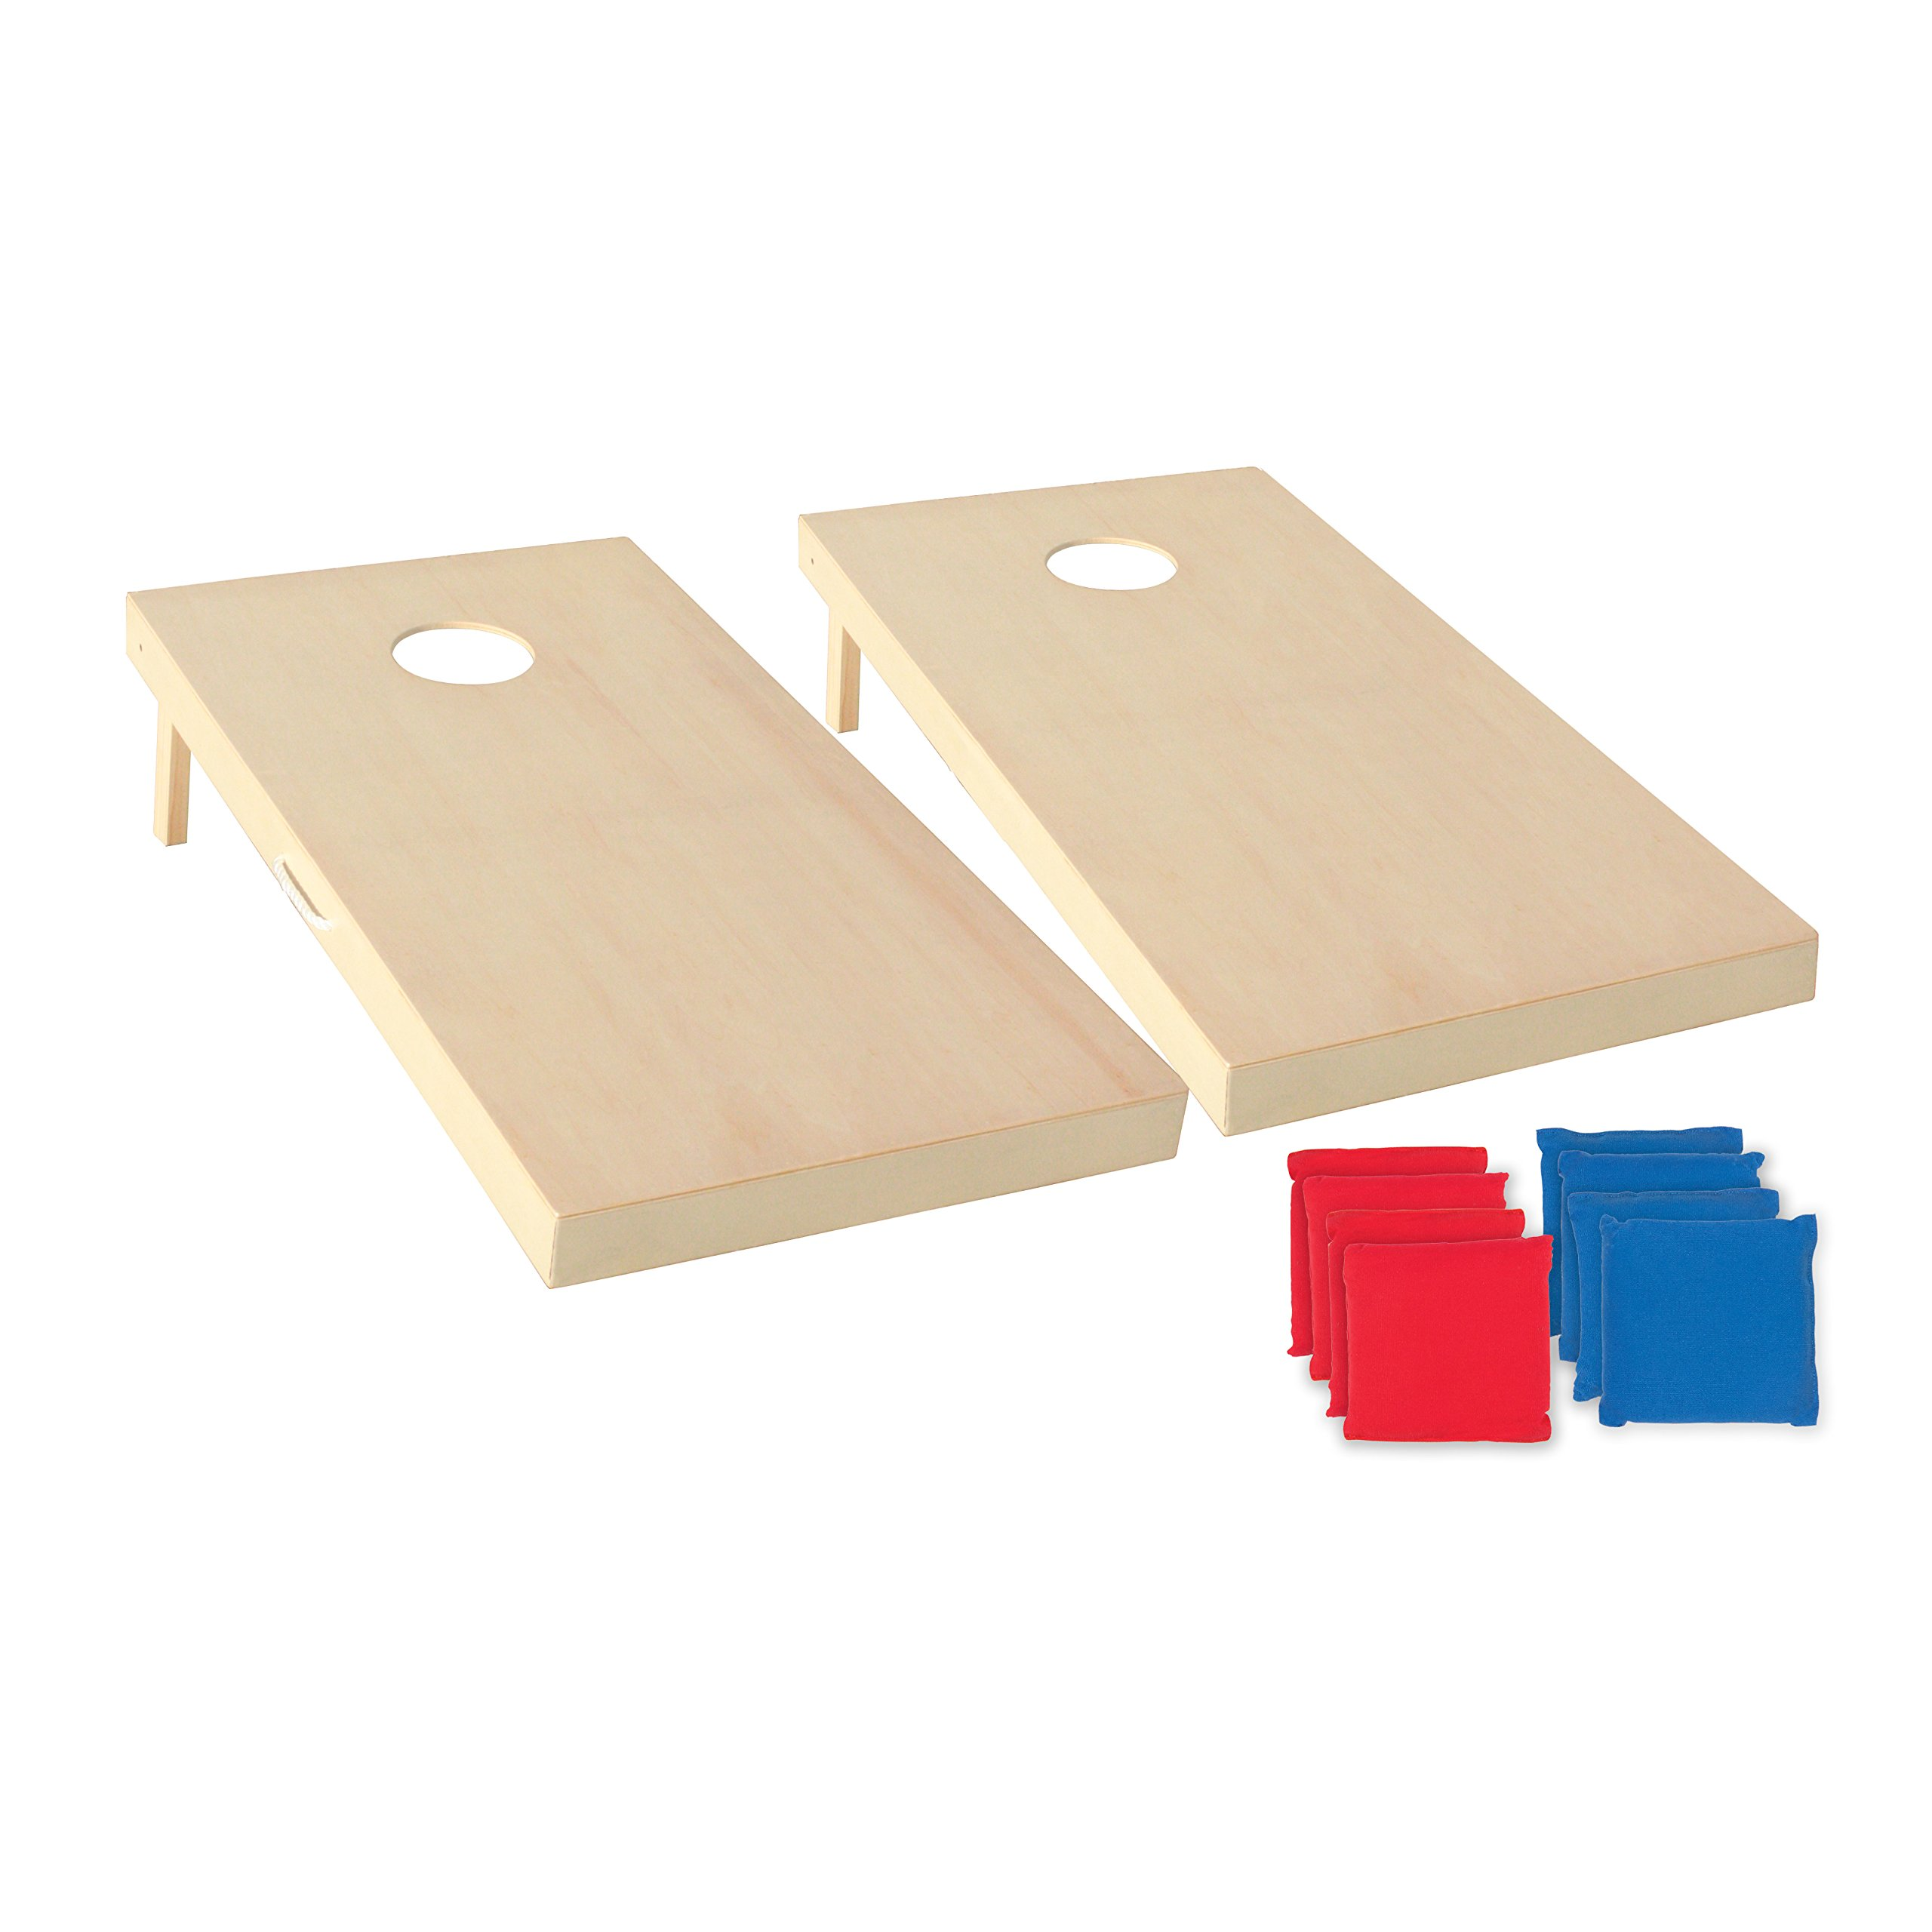 Triumph 2' x 4' ''Woodie'' Tournament Cornhole All-Wood Bean Bag Toss Set Includes 8 Bean Bags